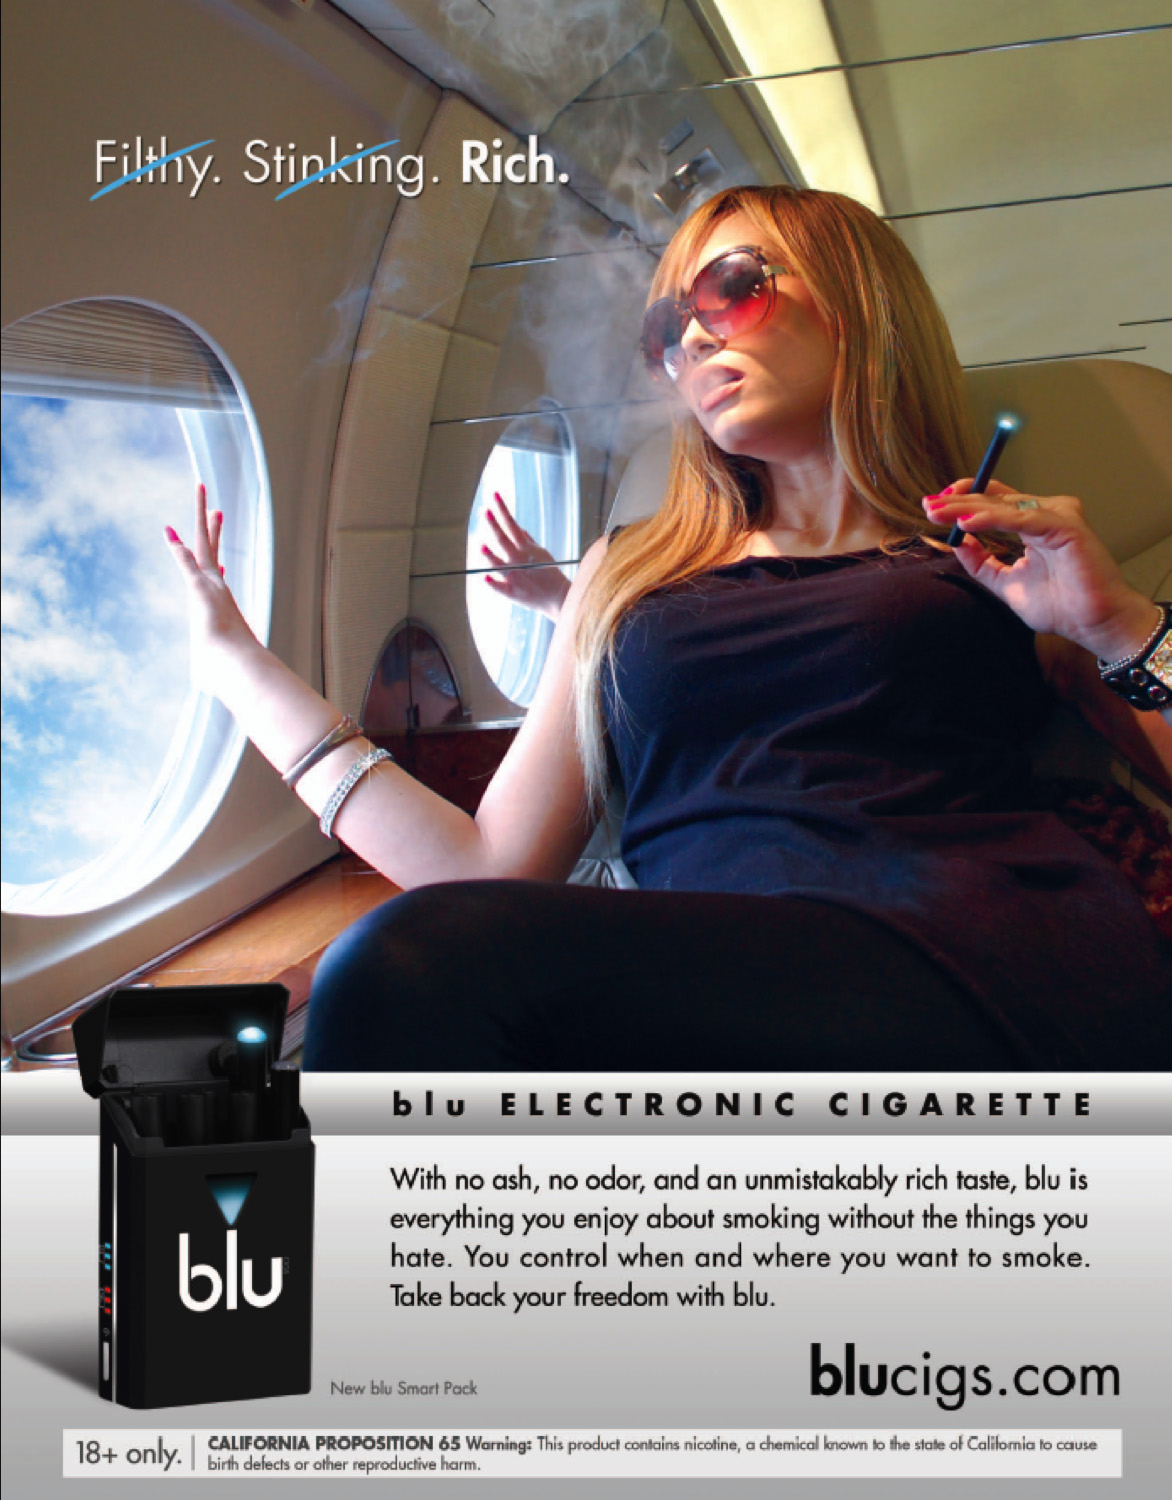 · Blu Cigs has been around for a long time and is the most available e-cigarette on store shelves in america. It has adopted a social media marketing theme that may not be for everyone, and frankly should possibly concentrate on innovating their dated products%(69).